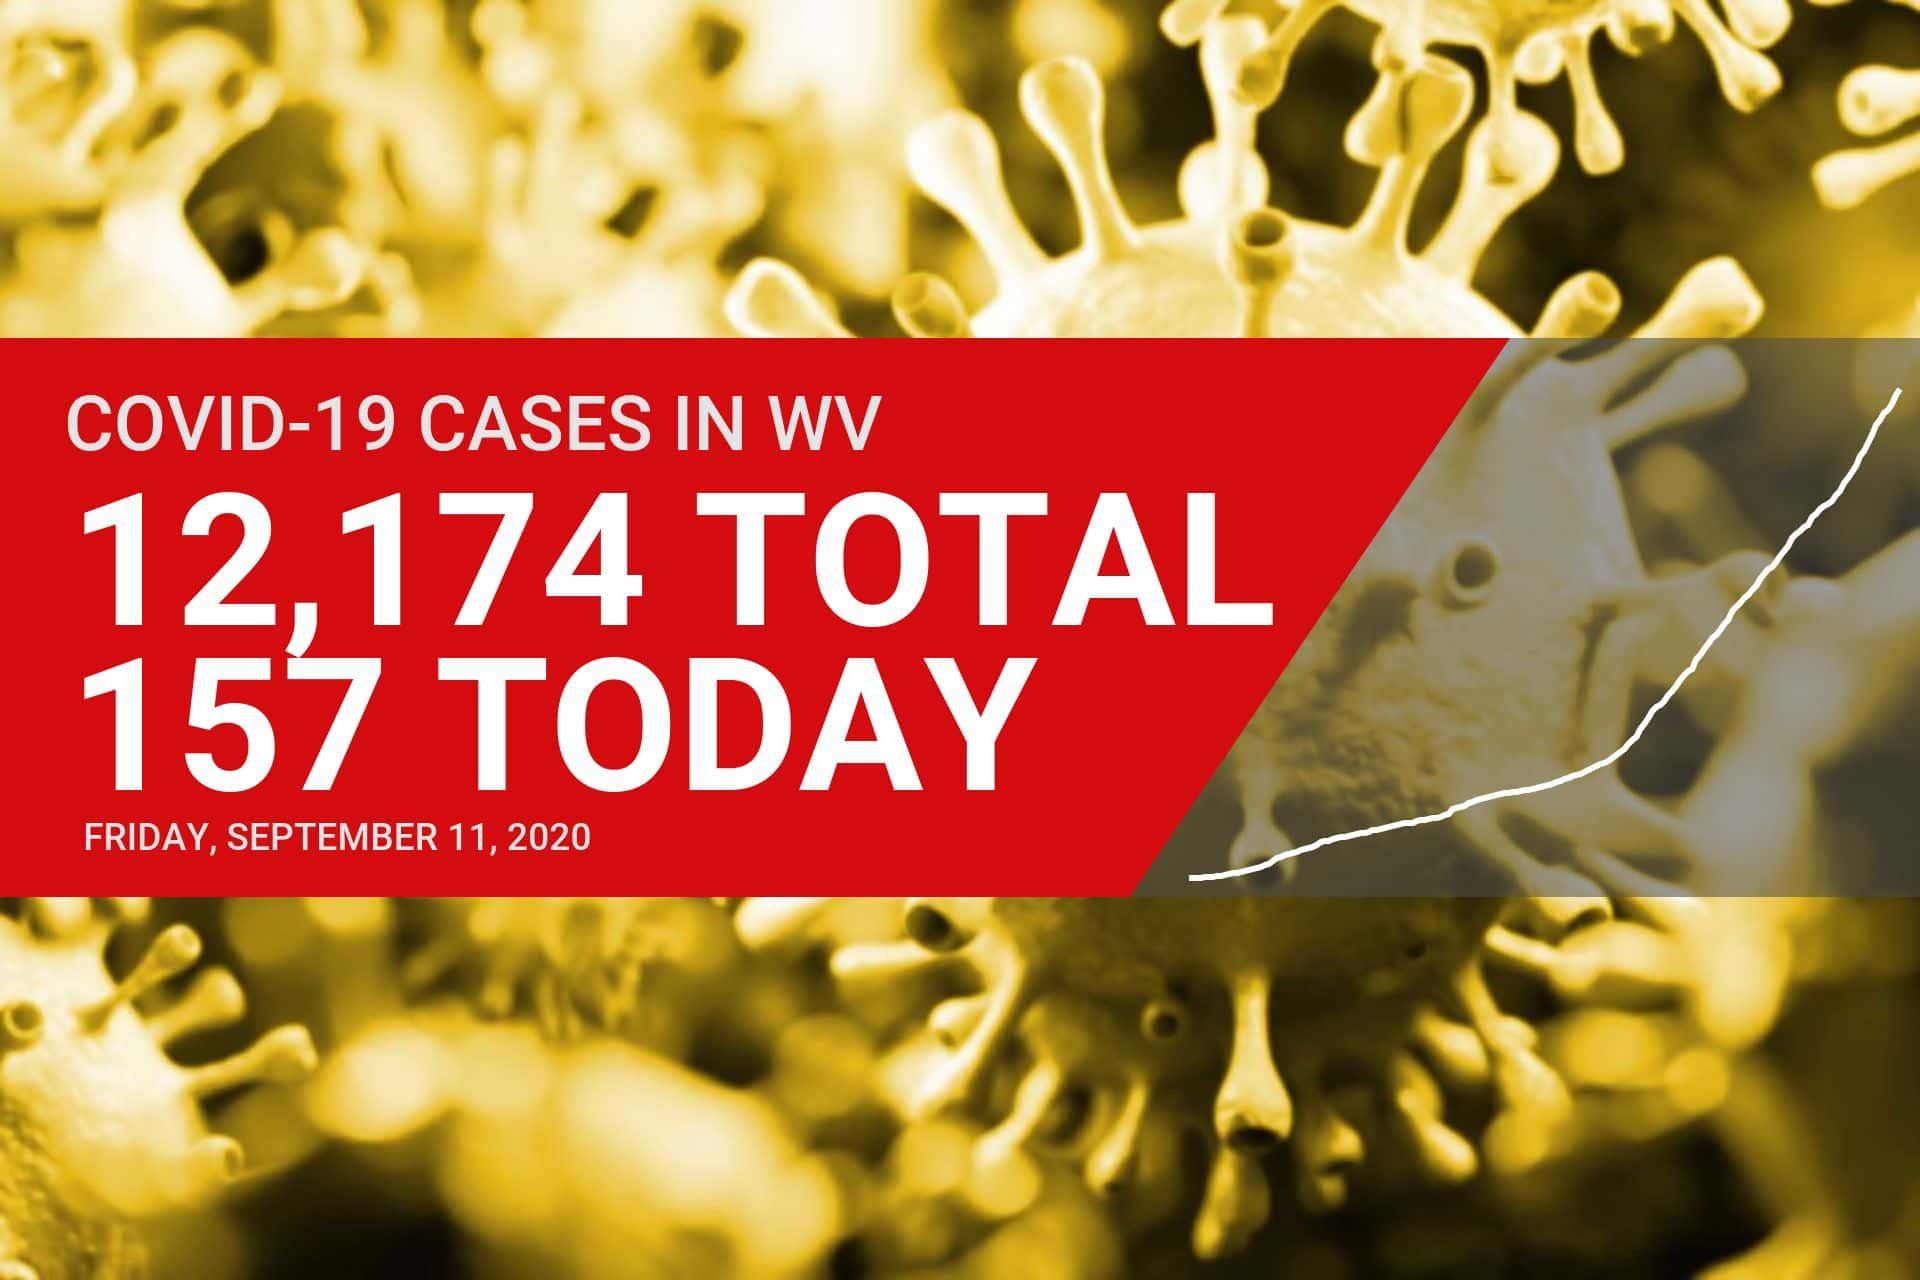 DHHR reports six new COVID-19 cases in Upshur County on Friday